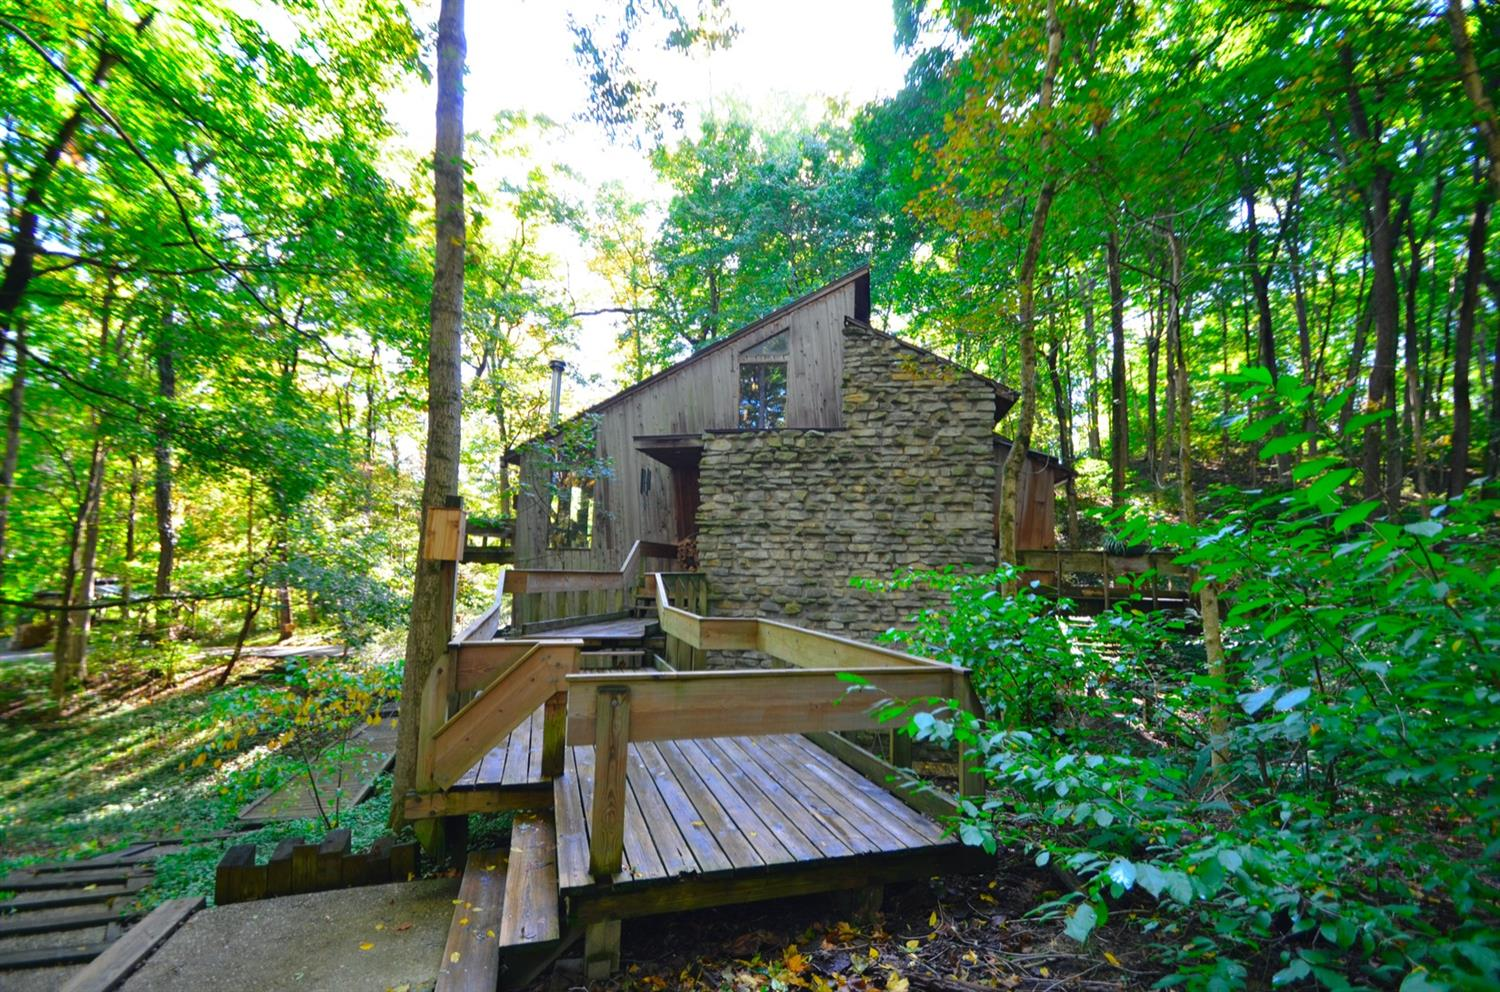 Fantastic modern getaway in the woods - beauty in all seasons!  Feels like you are in the Smoky Mountains, yet located just outside of the 1-275 loop.  Convenient to everything, but feels far away from it all......